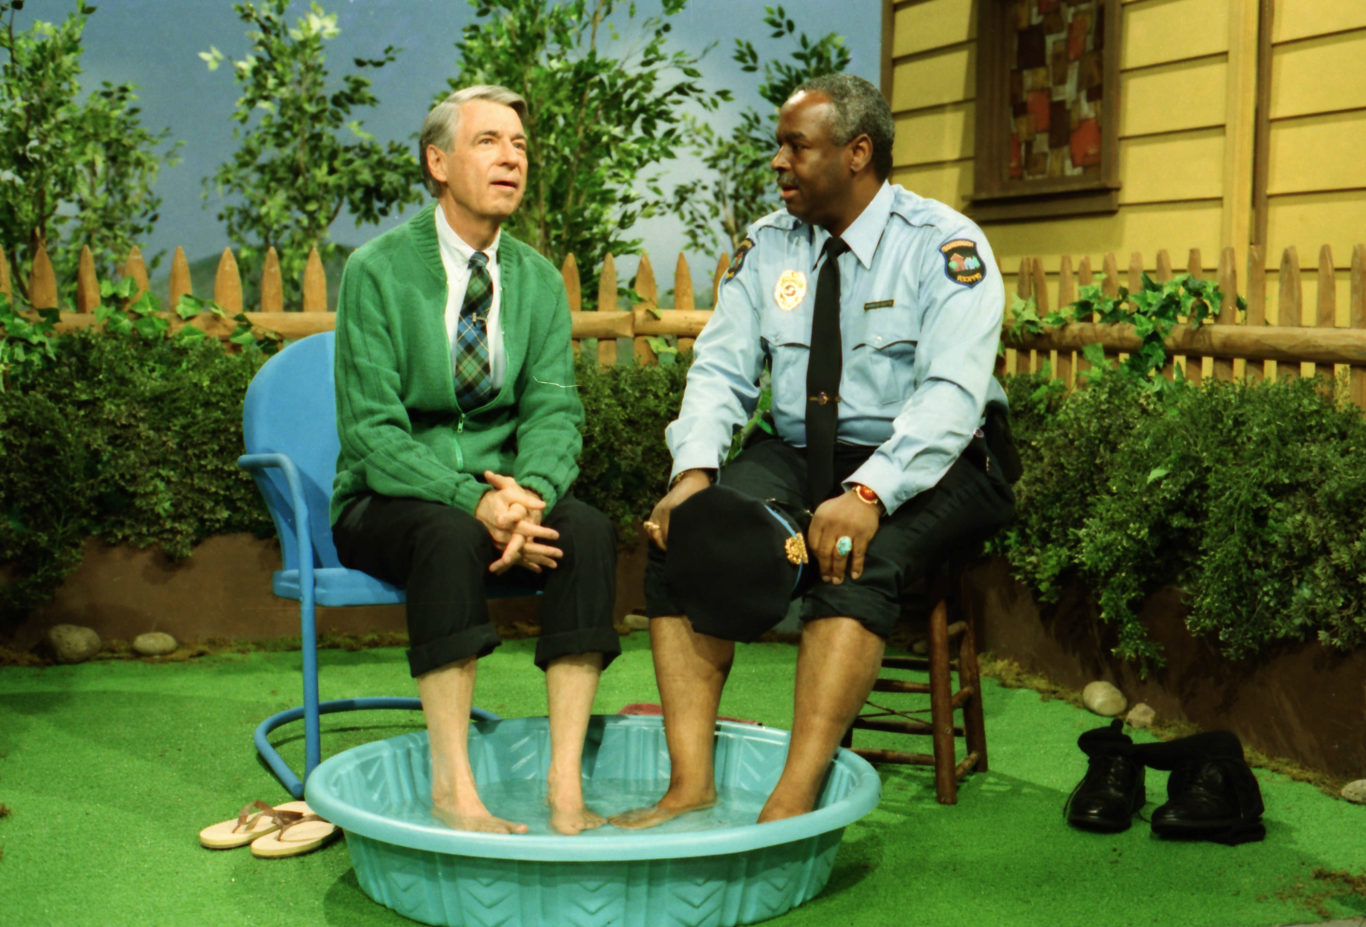 video review : Won't You Be My Neighbor